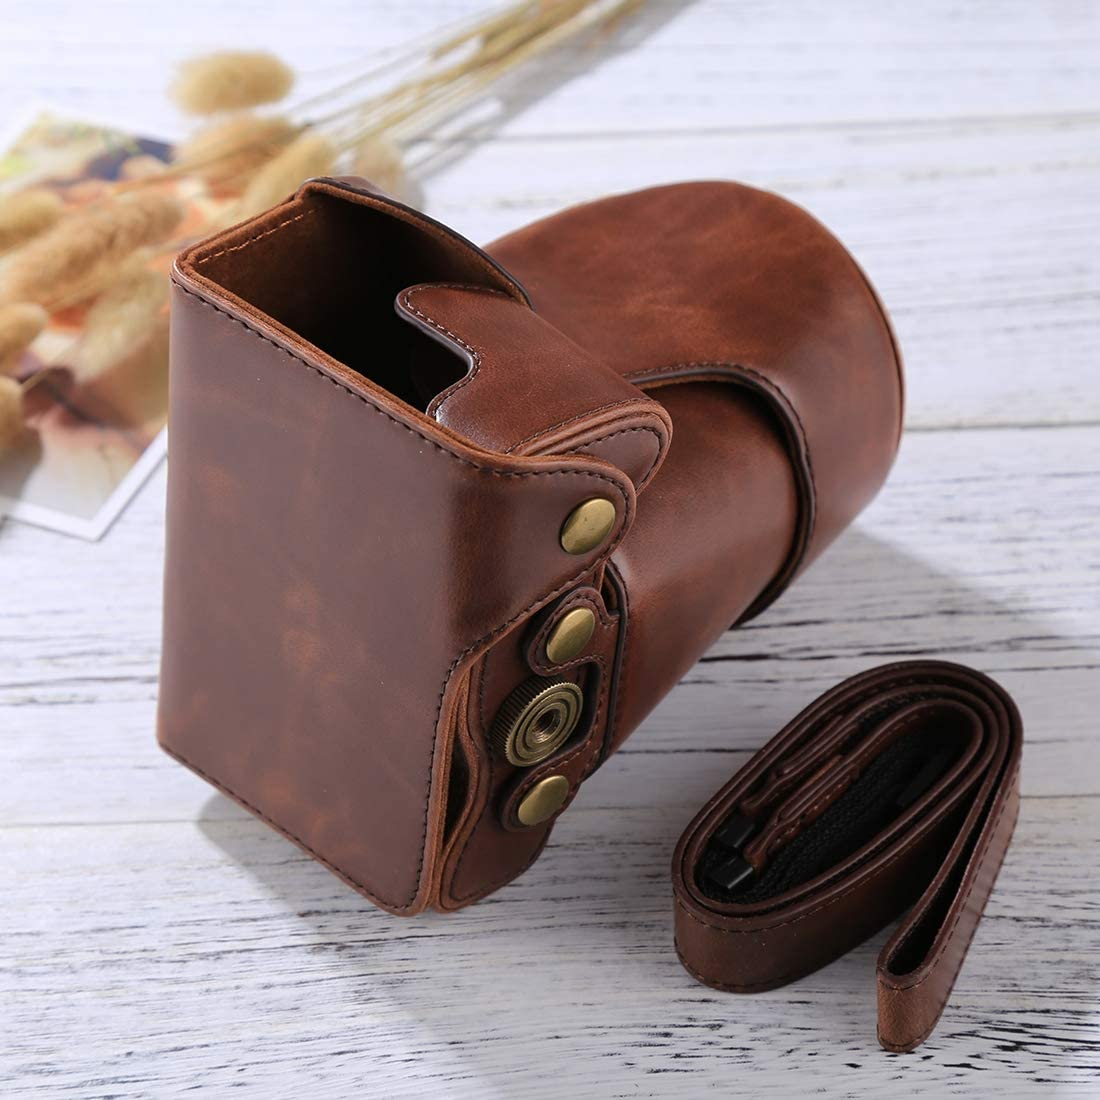 Black Color : Brown 18-150mm Lens HONGYU Camera Accessories Full Body Camera PU Leather Case Bag with Strap for Canon EOS M6